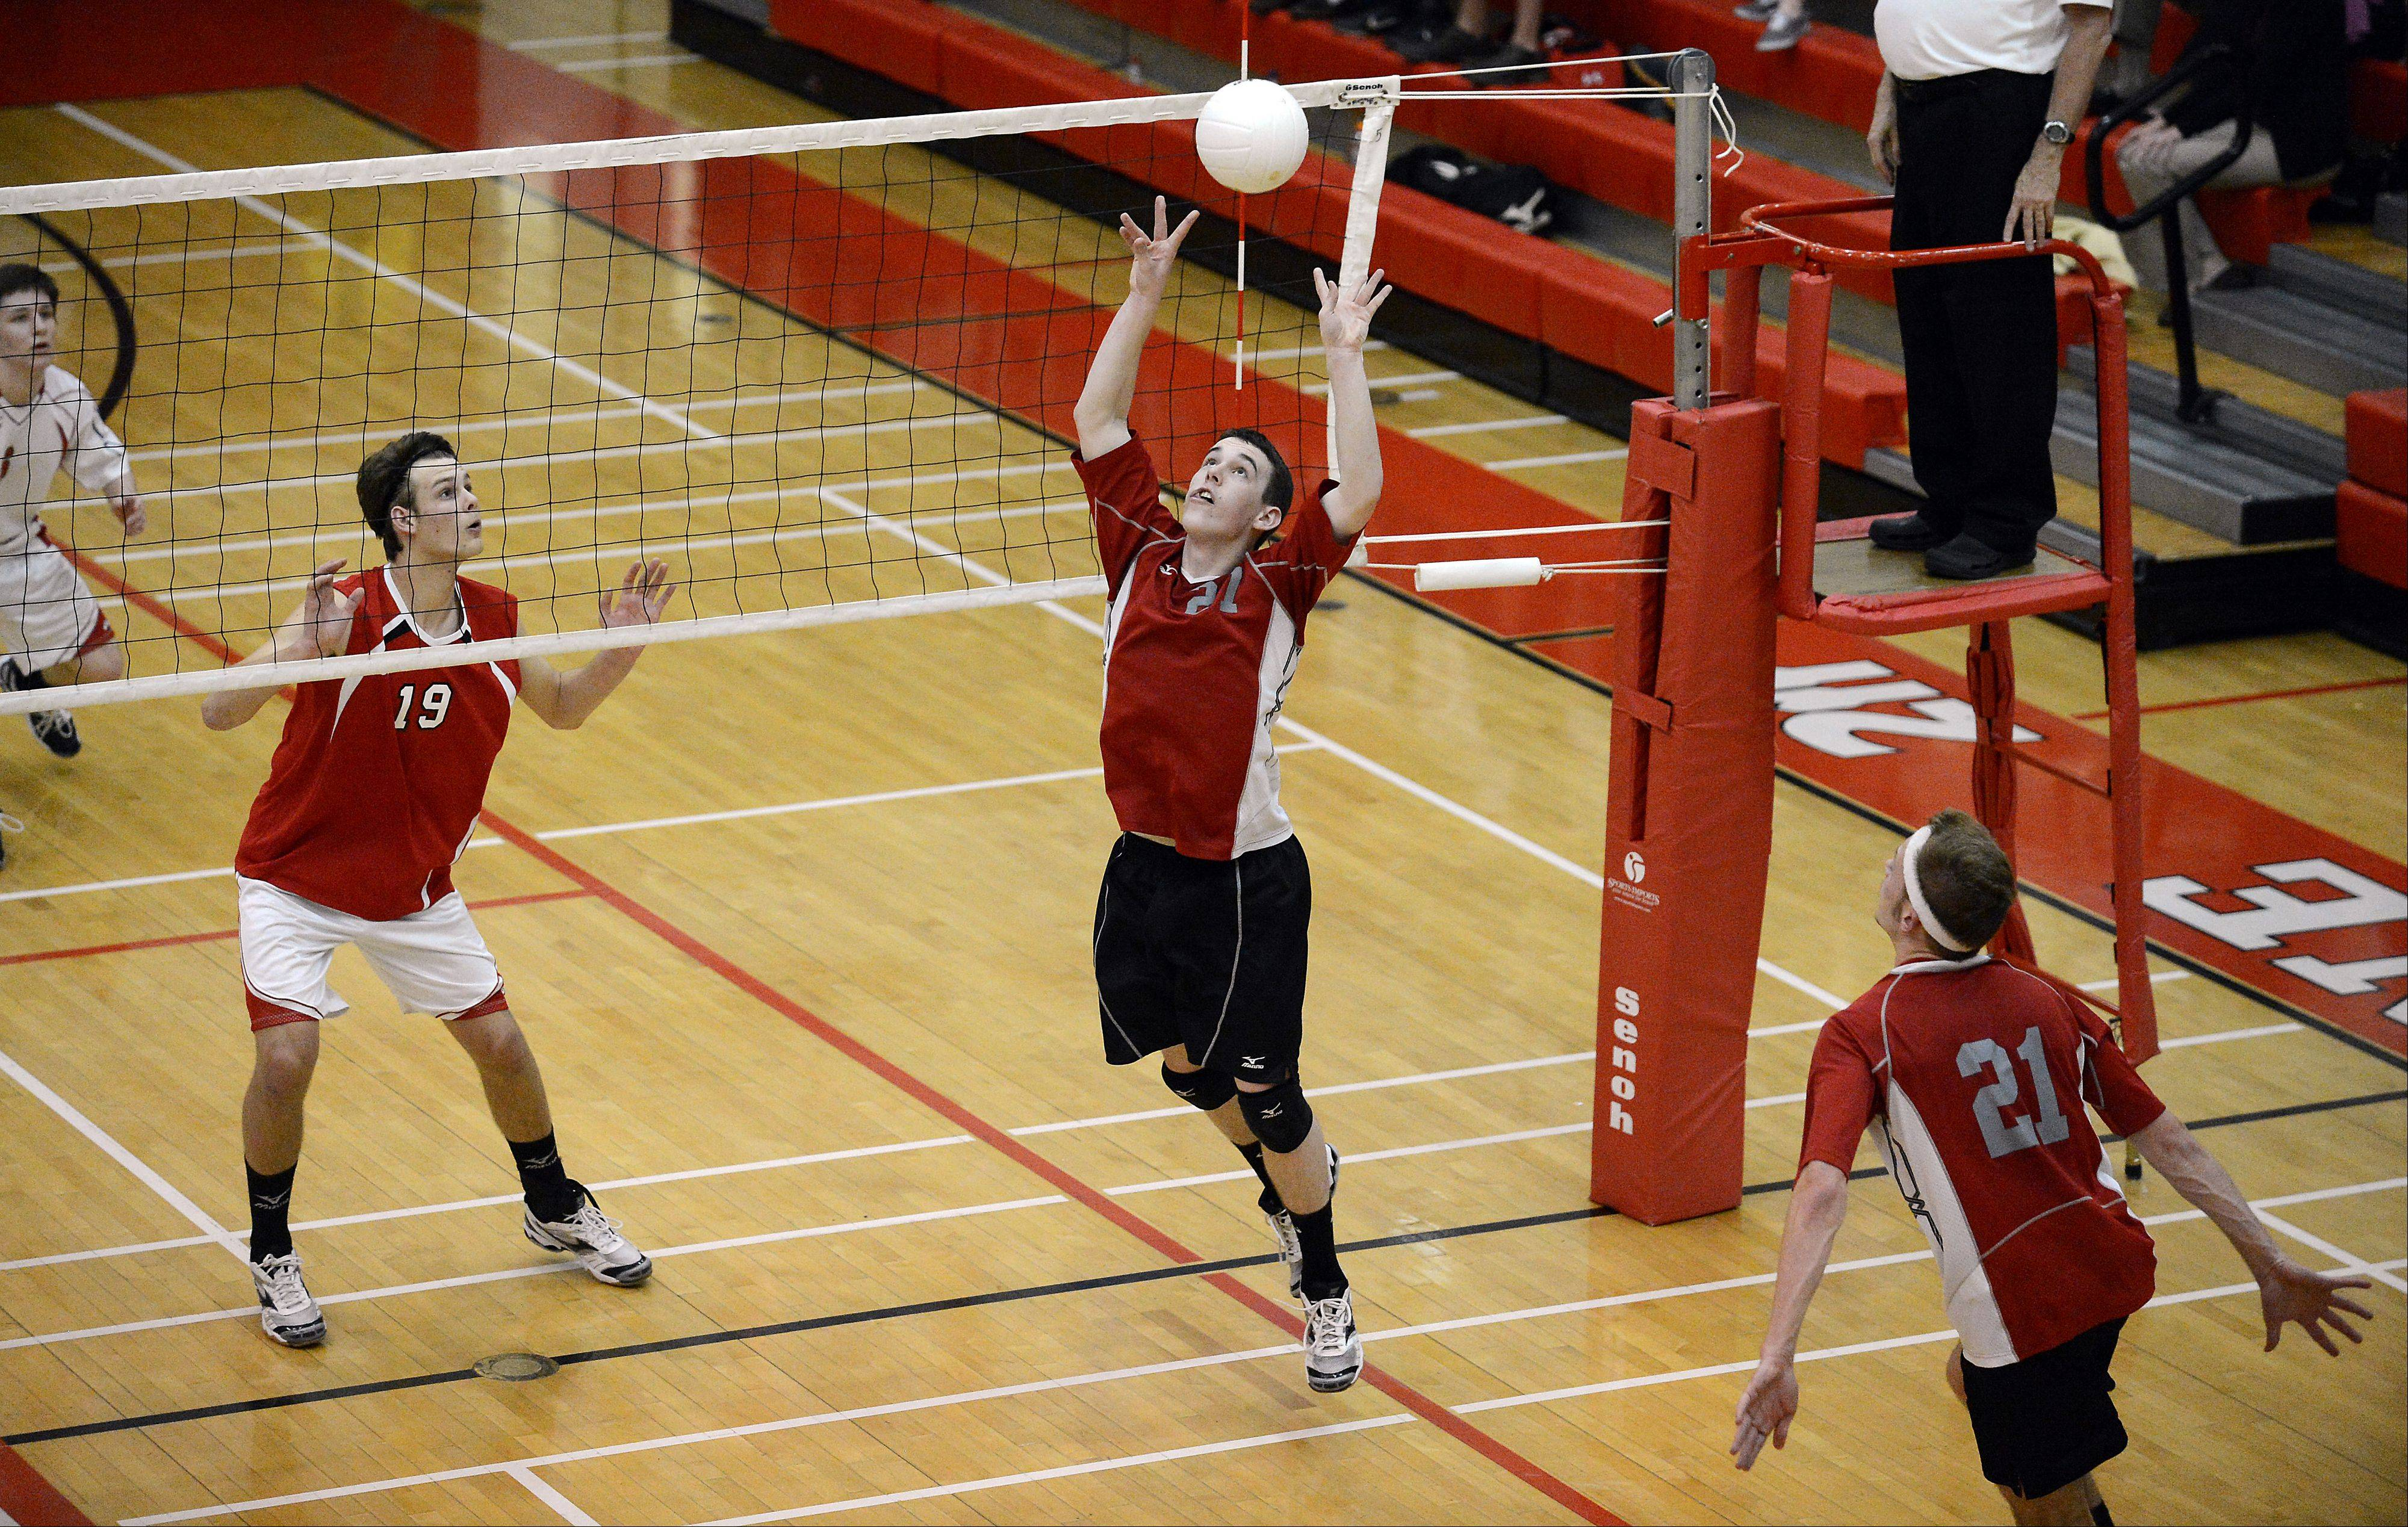 Palatine's Kyle Obernesser sets up the winning point for teammate Jacob Niedzwicki, who attacks past Barrington's Justin Glader for the winning point Thursday against visiting Barrington.